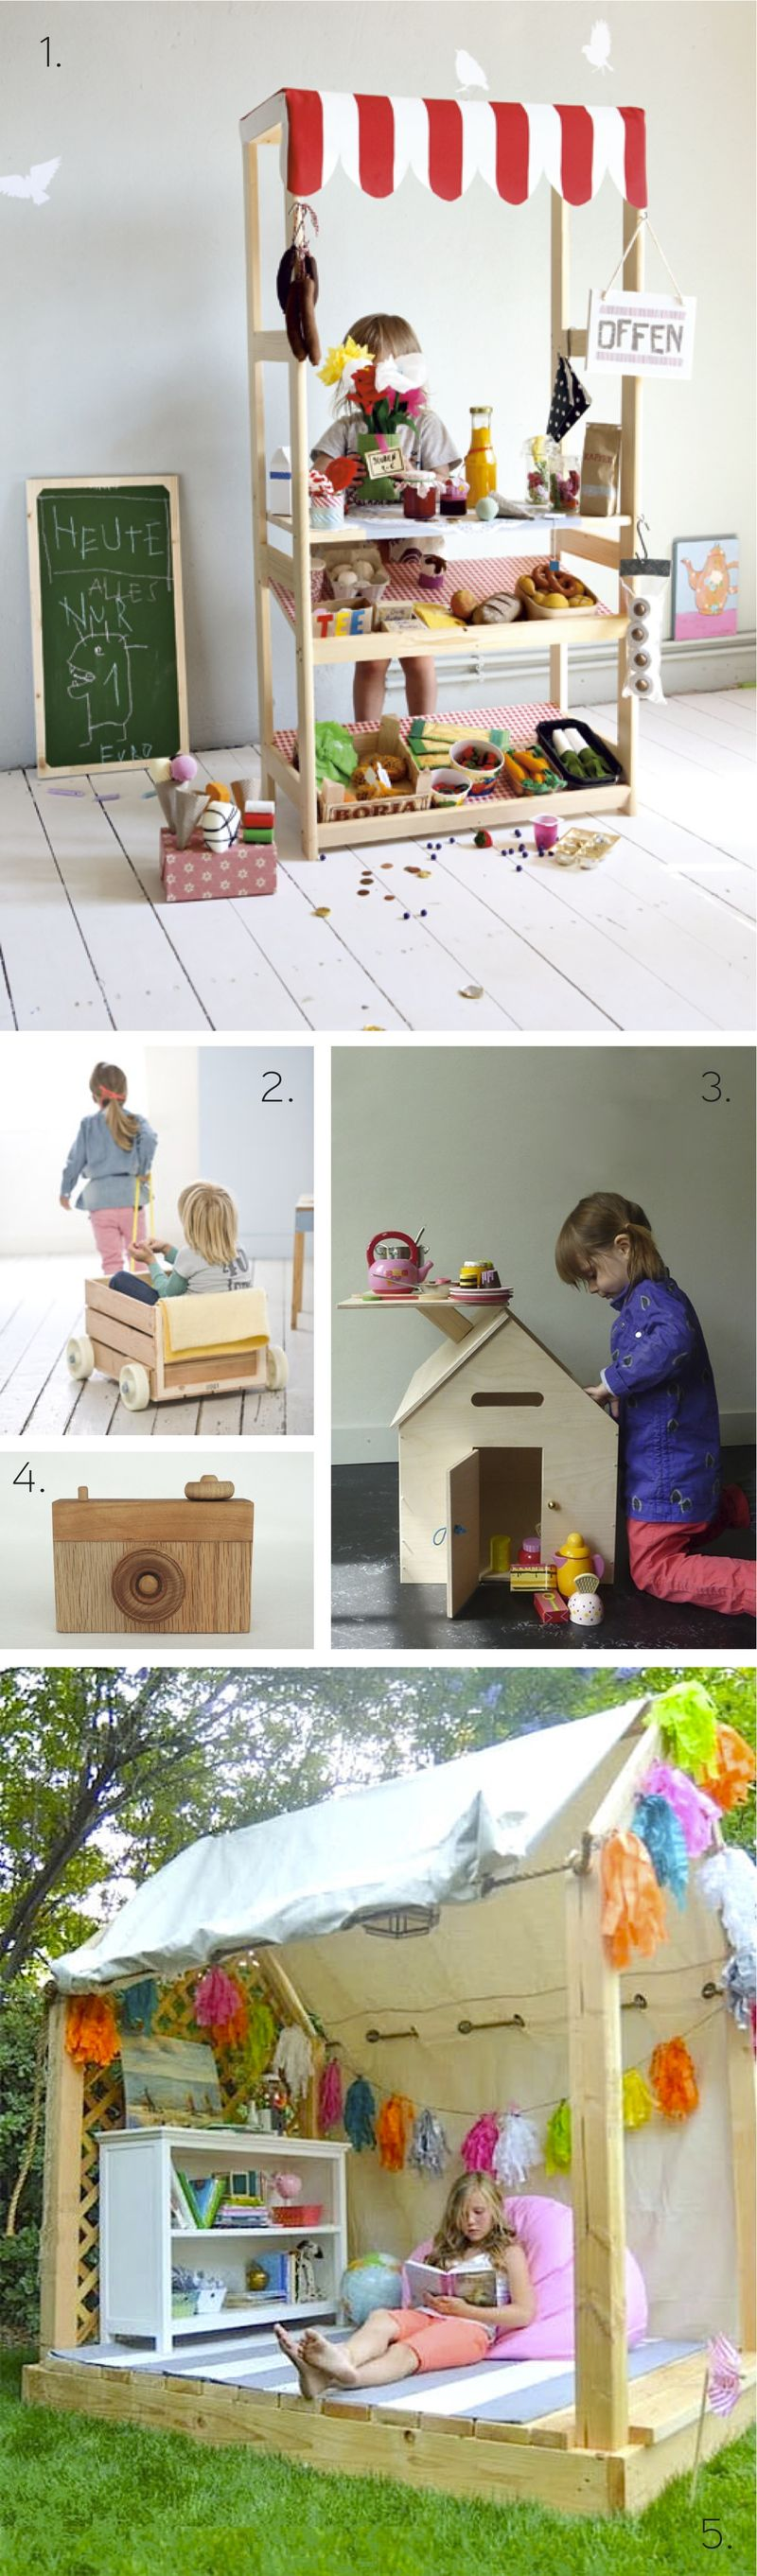 DIY Wooden Projects for Kids - HabitatKid blog